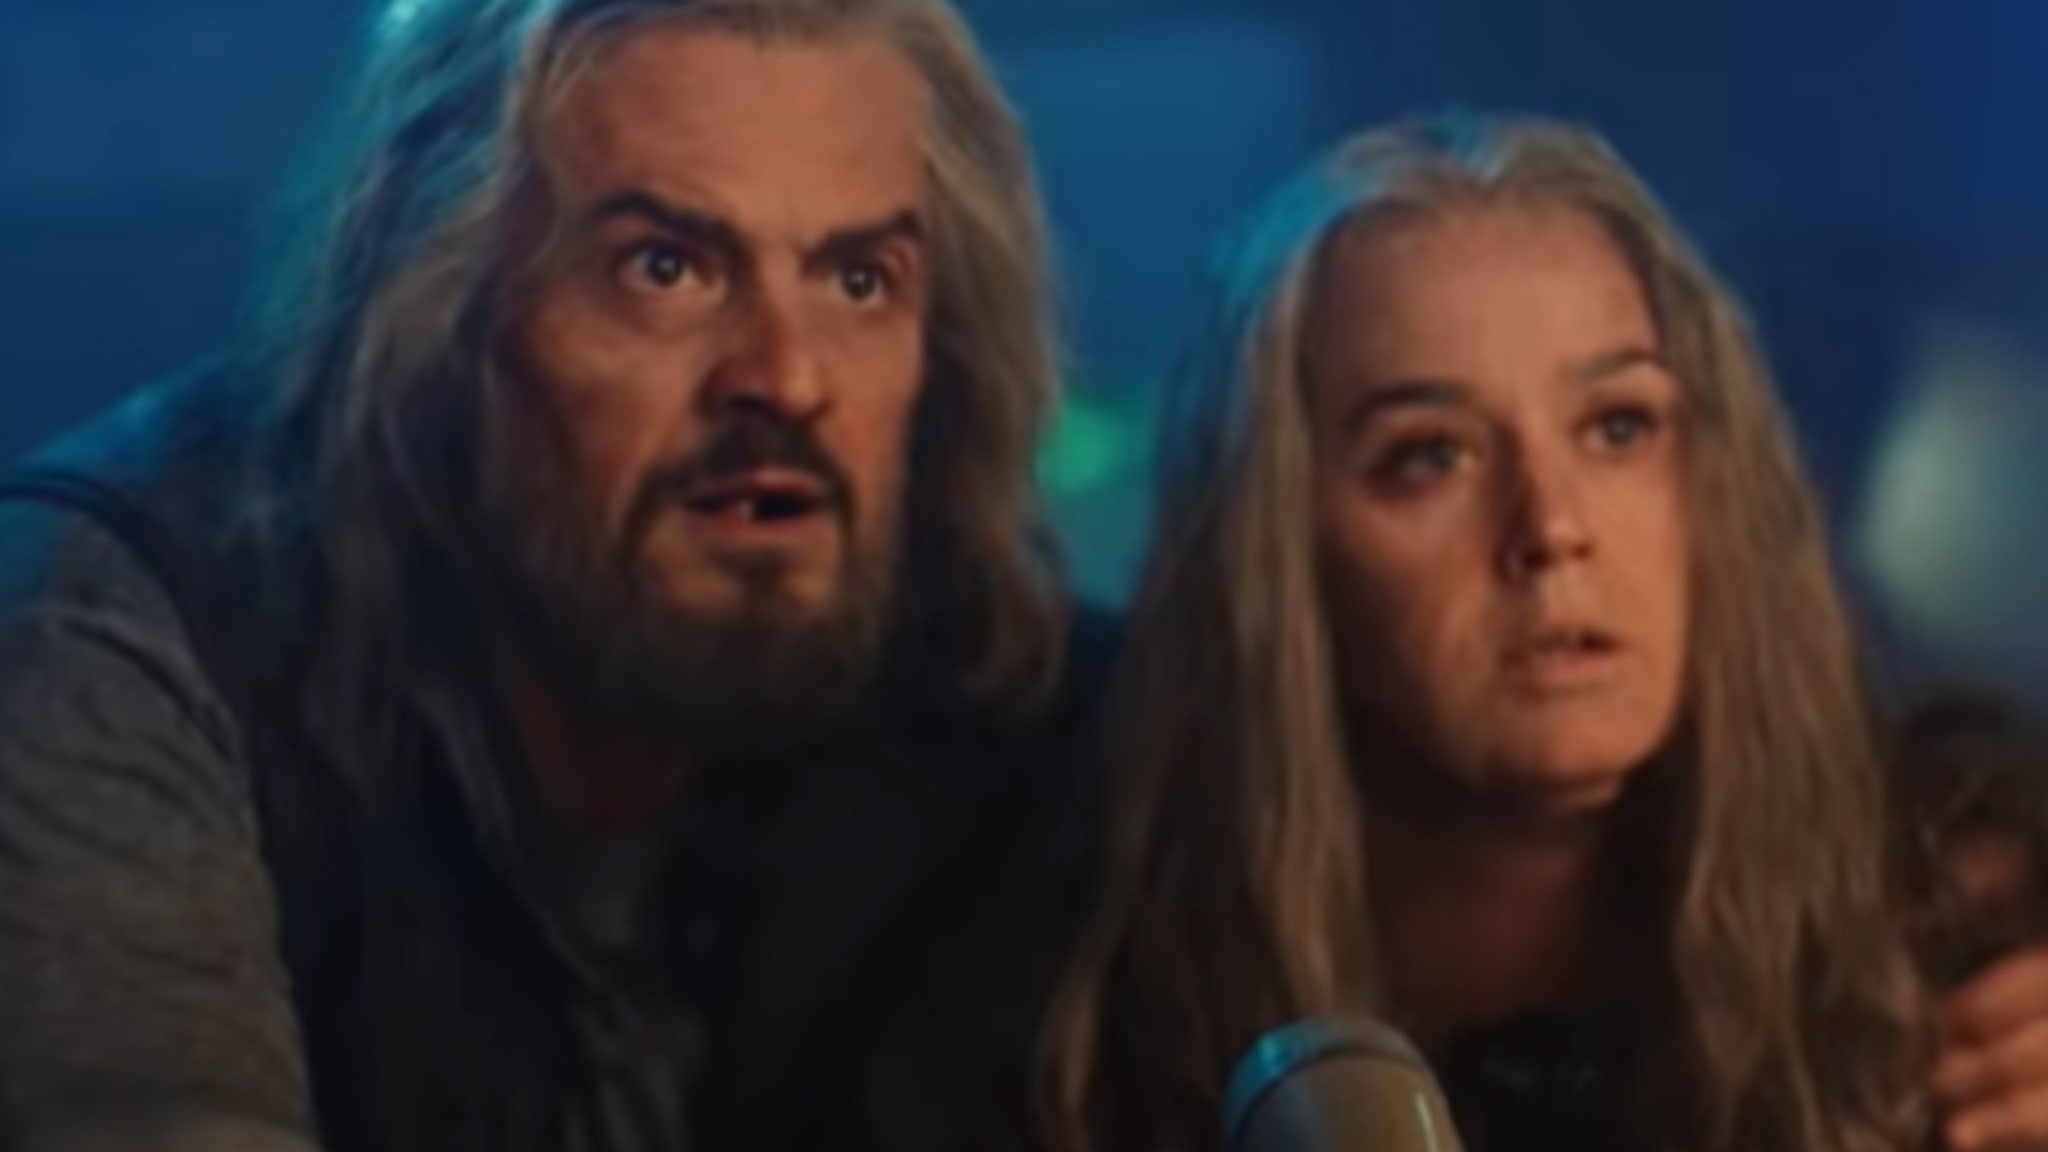 Katy Perry and Orlando Bloom transform into aging freedom fighters to convey a message from the future